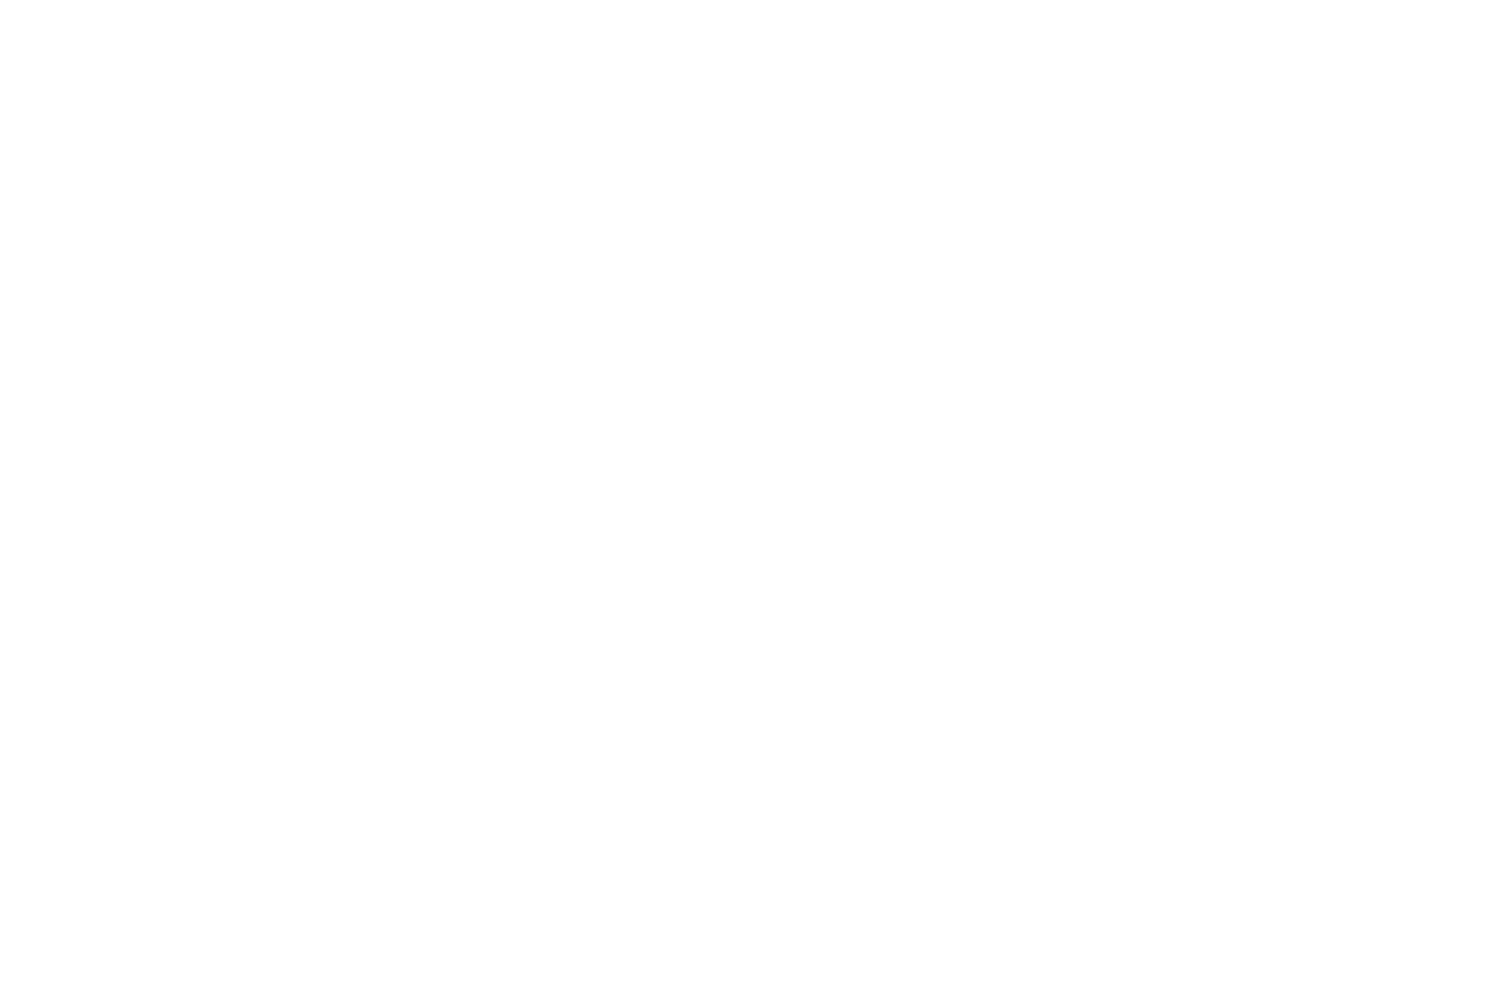 Tenth Letter Made